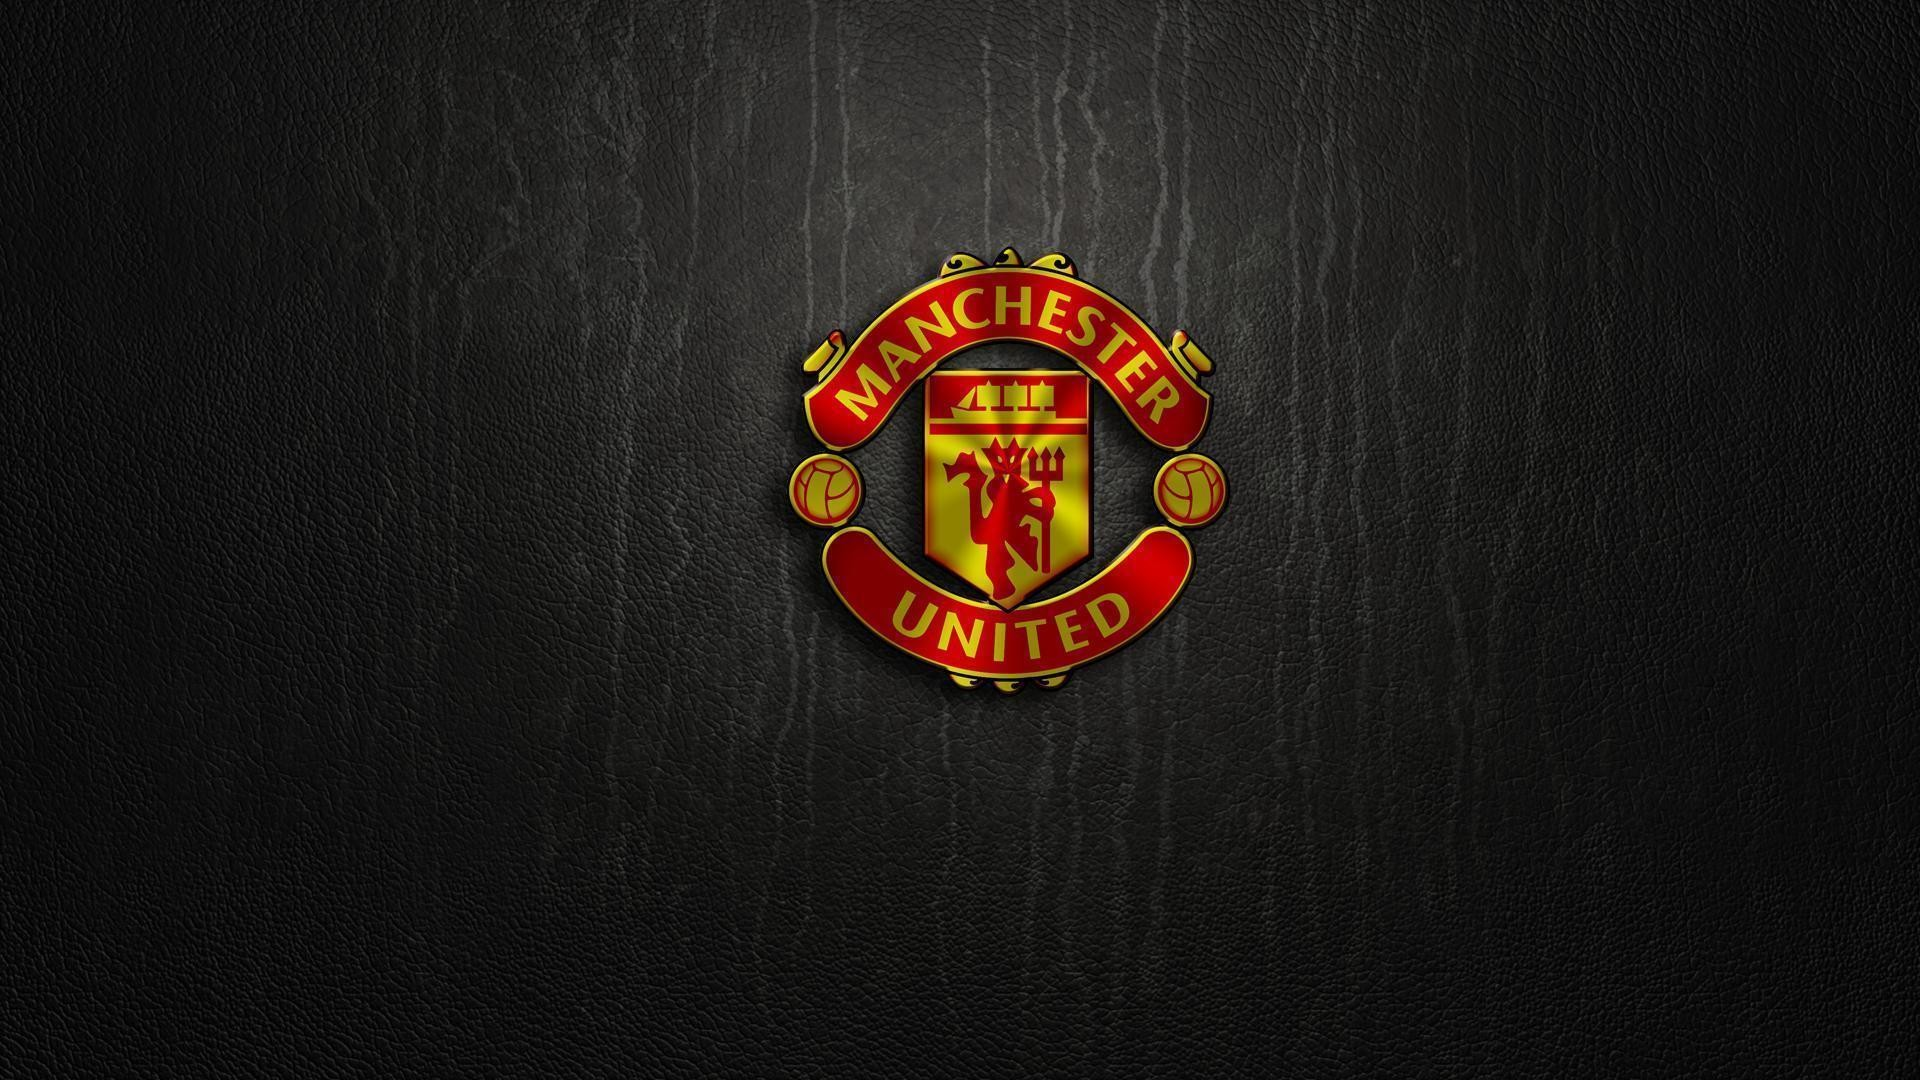 Iphone 4 Wallpaper Resolution Manchester United Wallpaper Hd 68 Images